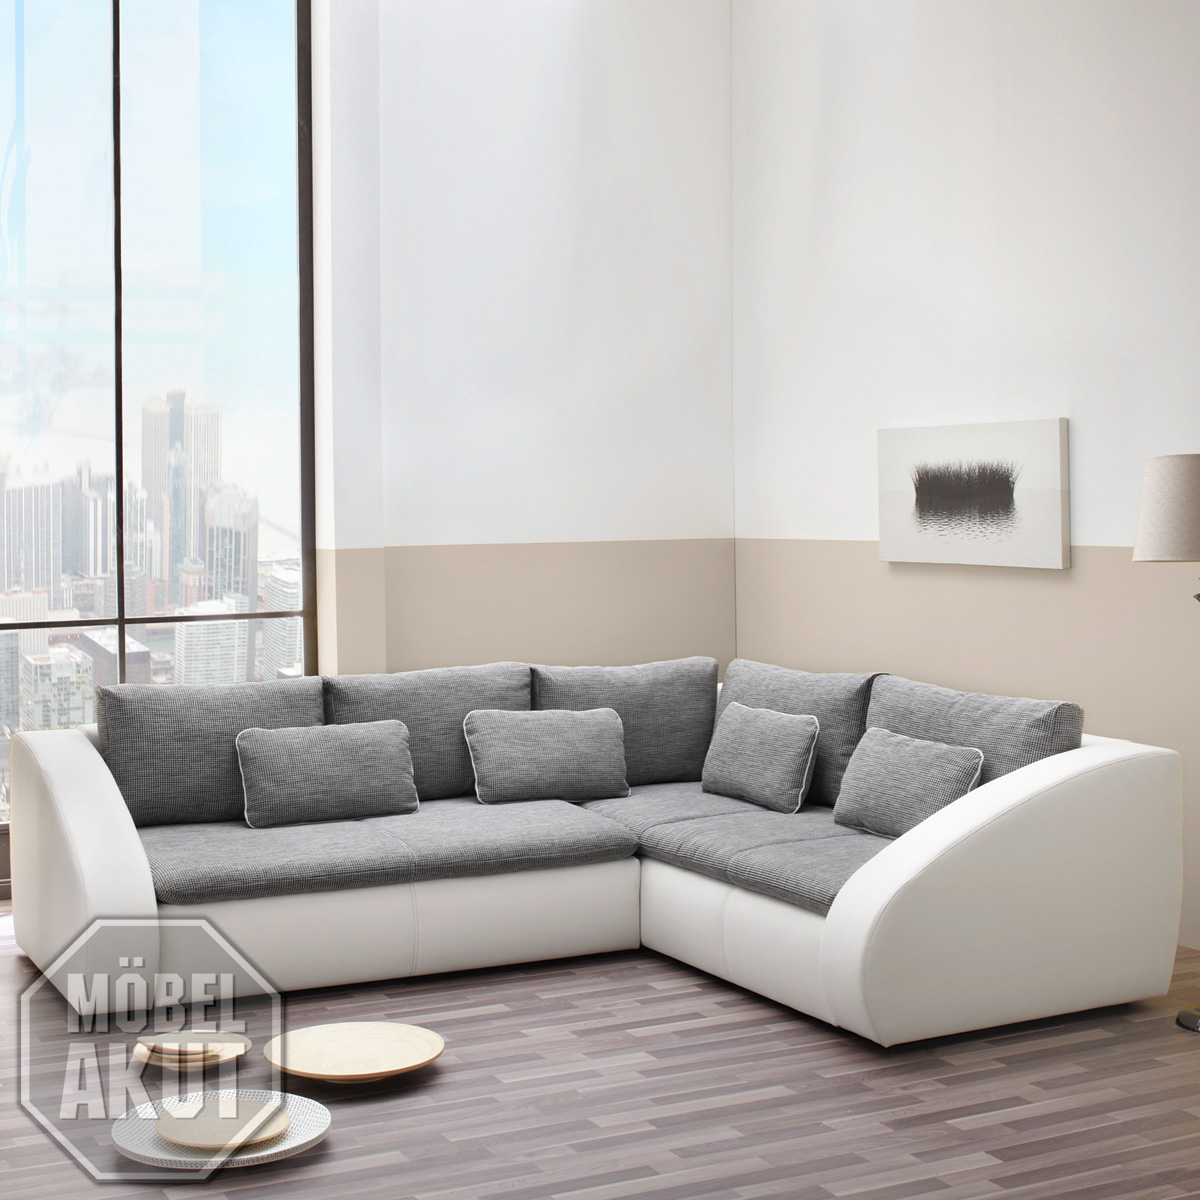 wohnlandschaft sotos ecksofa sofa in wei grau mit bettkasten neu ebay. Black Bedroom Furniture Sets. Home Design Ideas